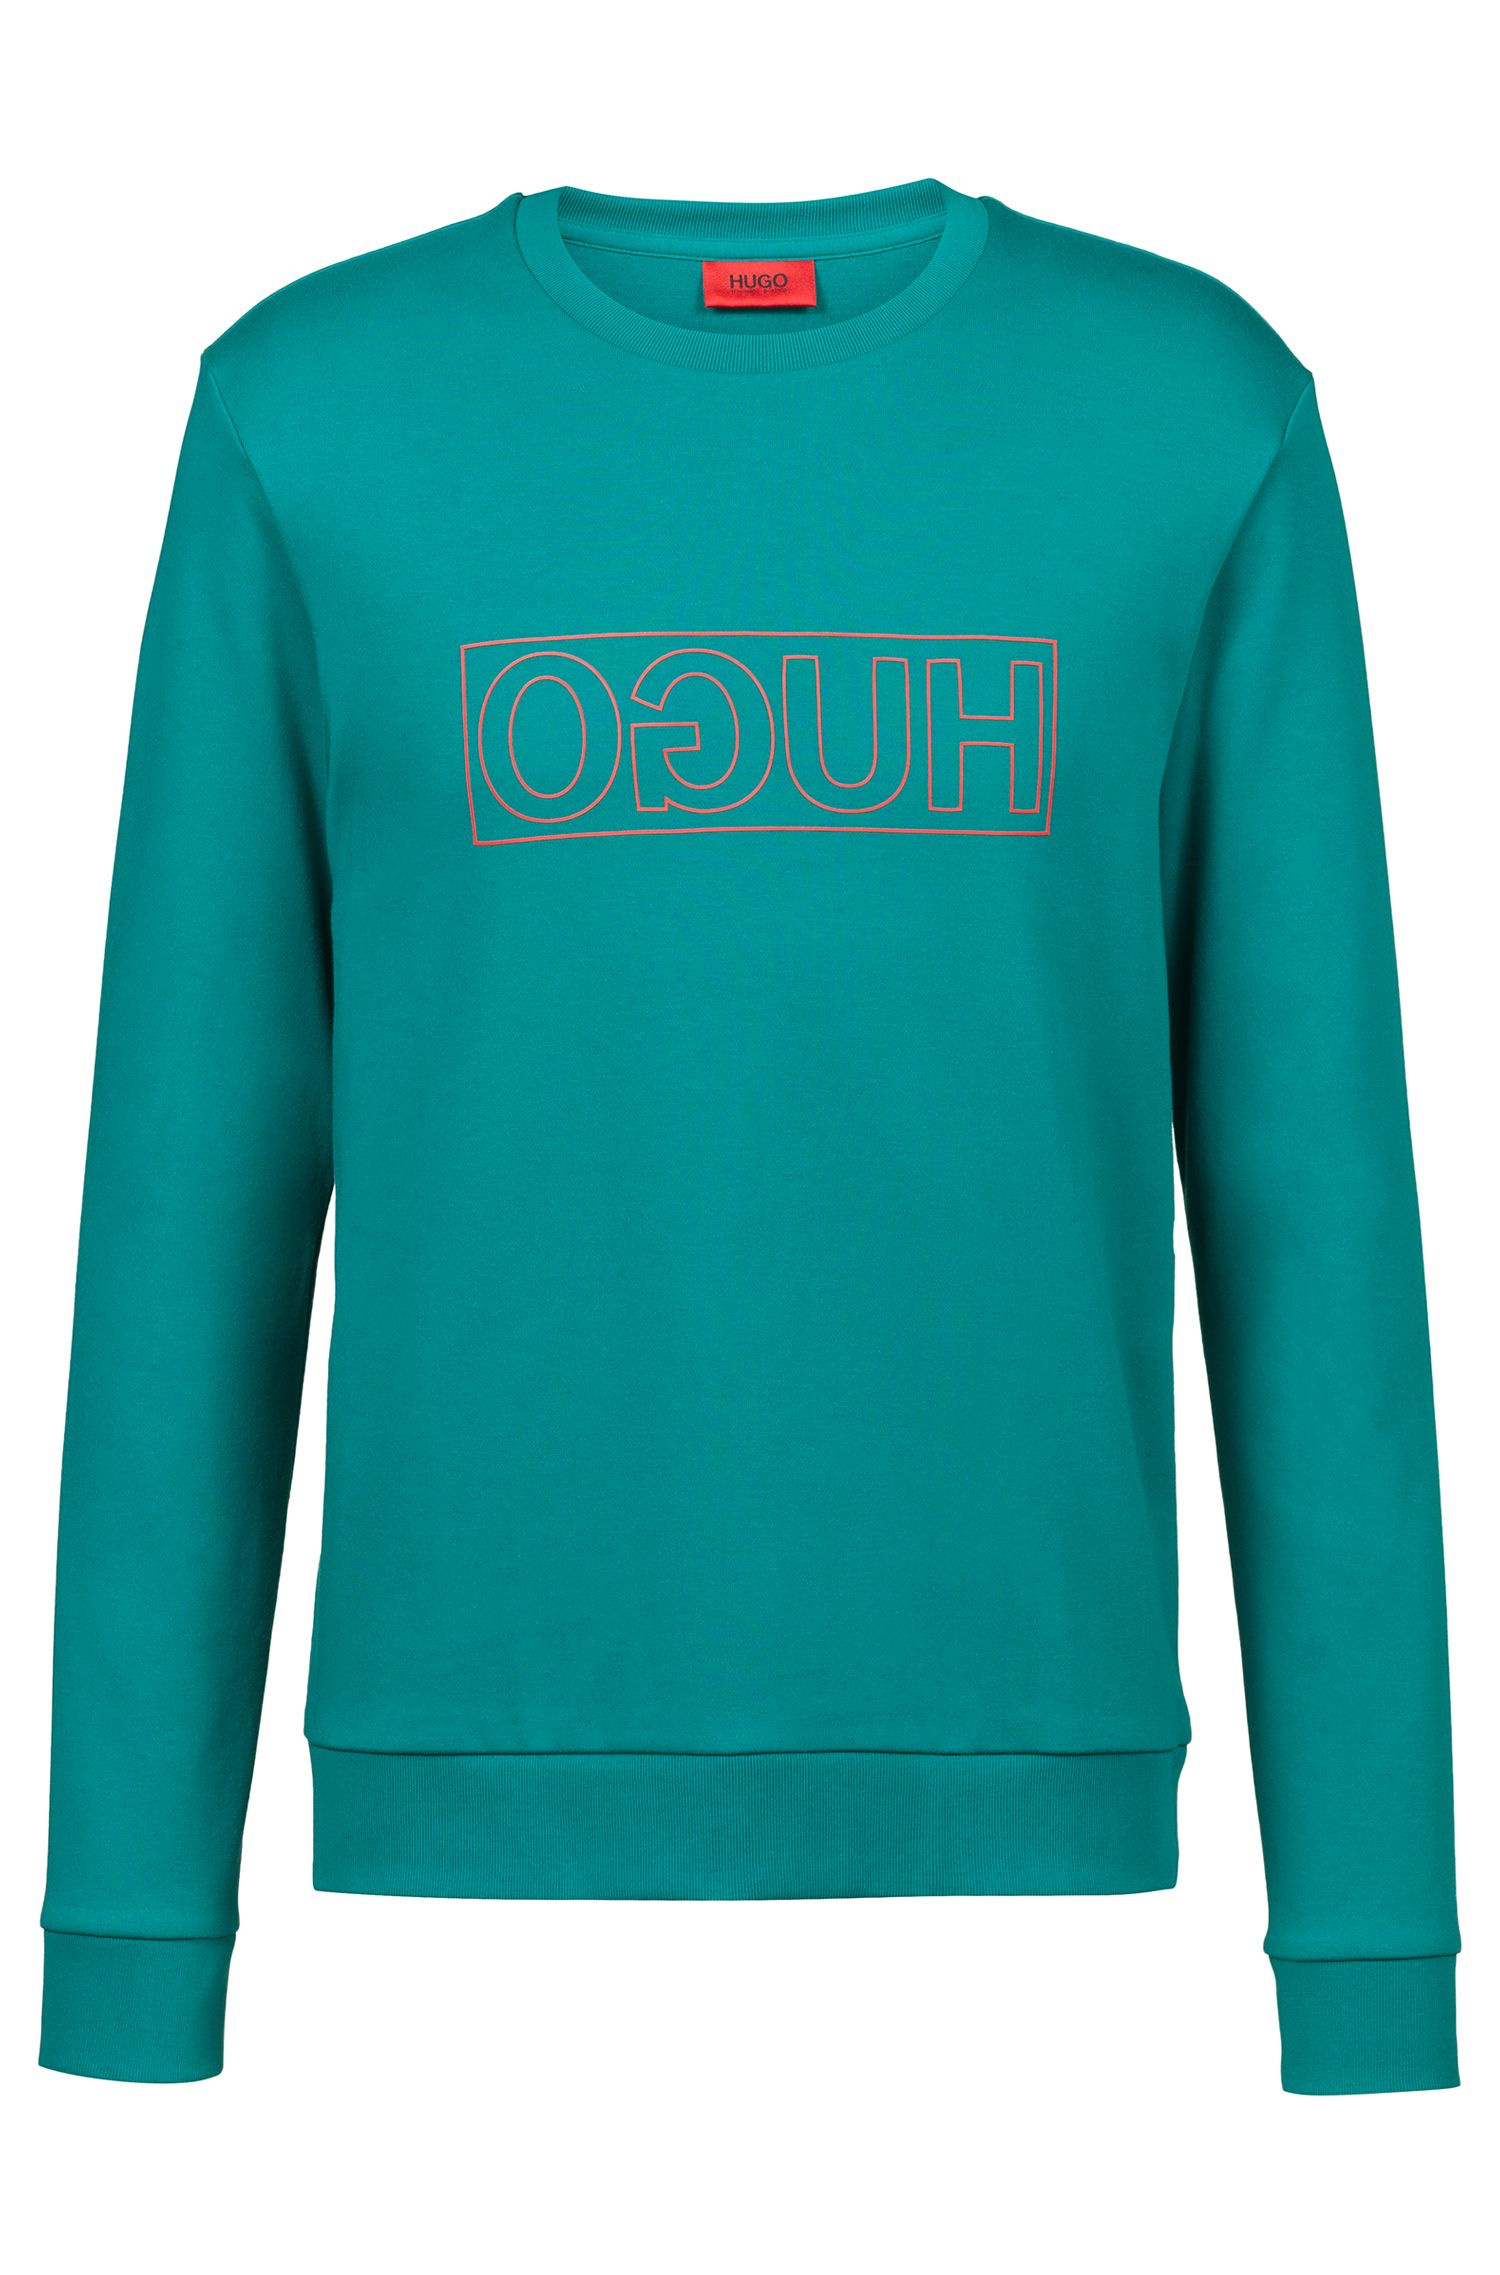 Crew-neck sweatshirt in pure cotton with reverse logo, Turquoise